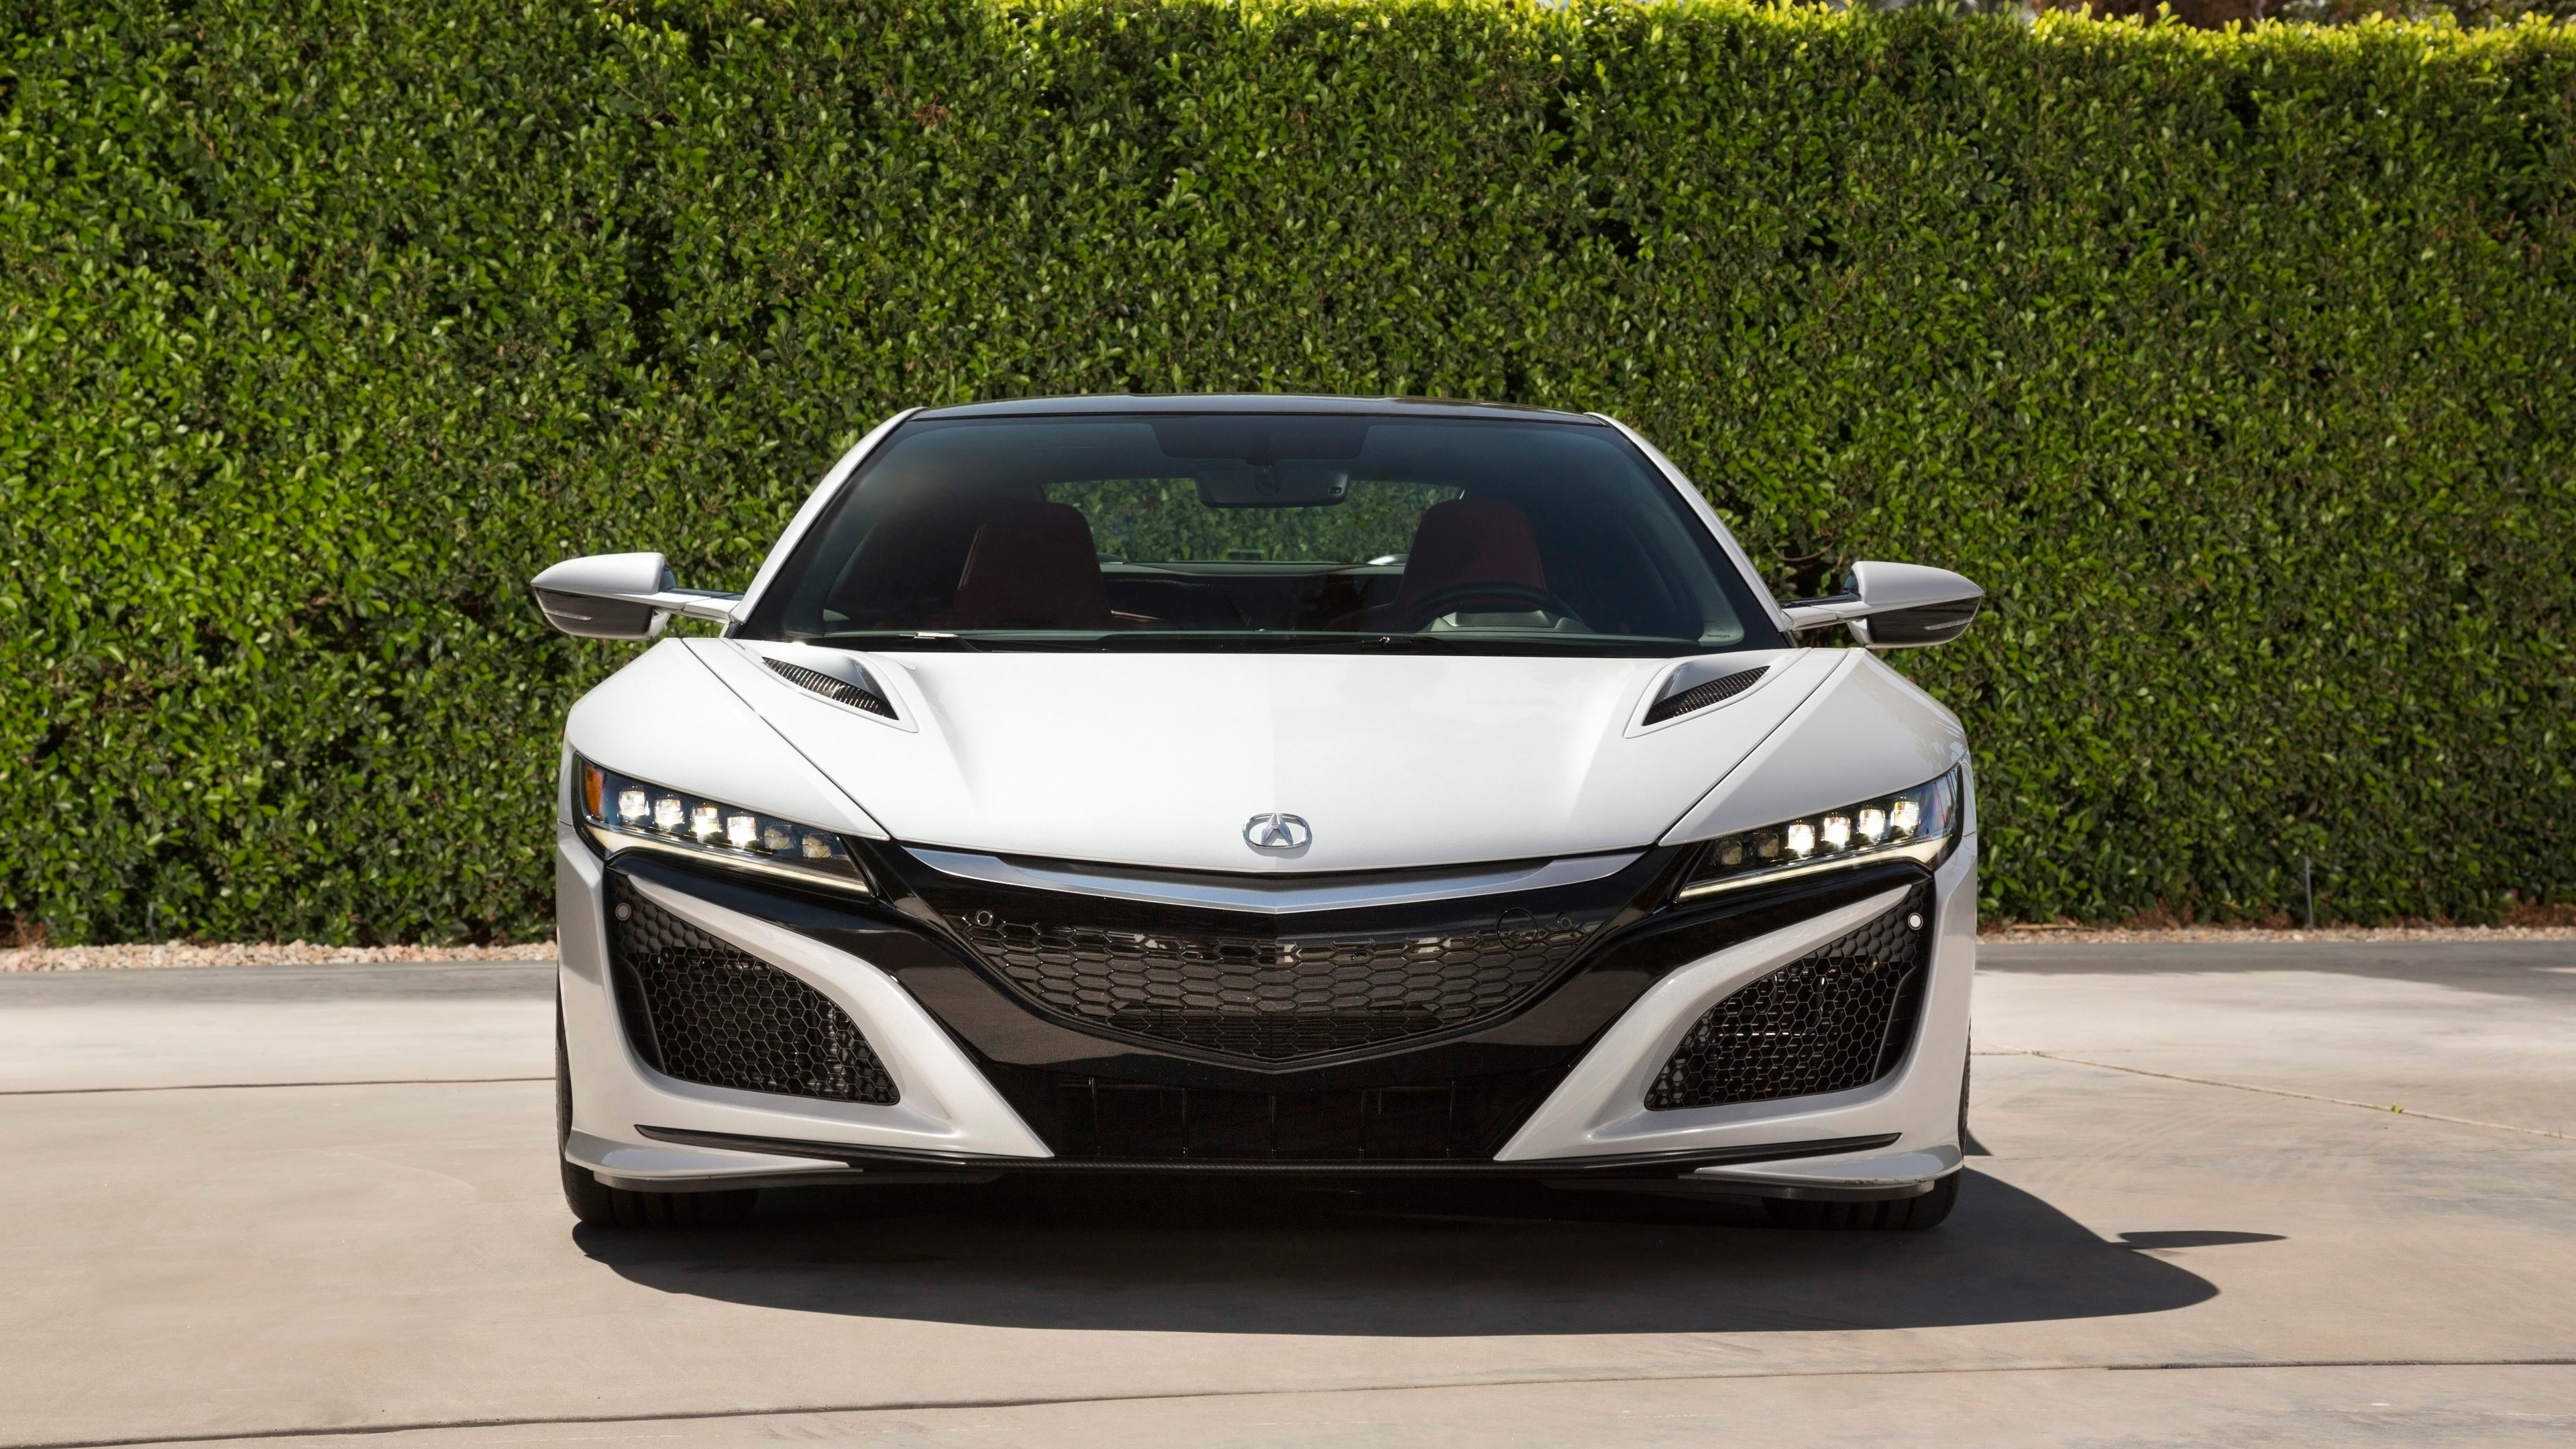 2017 Acura NSX White Wallpaper | HD Car Wallpapers | ID #8242